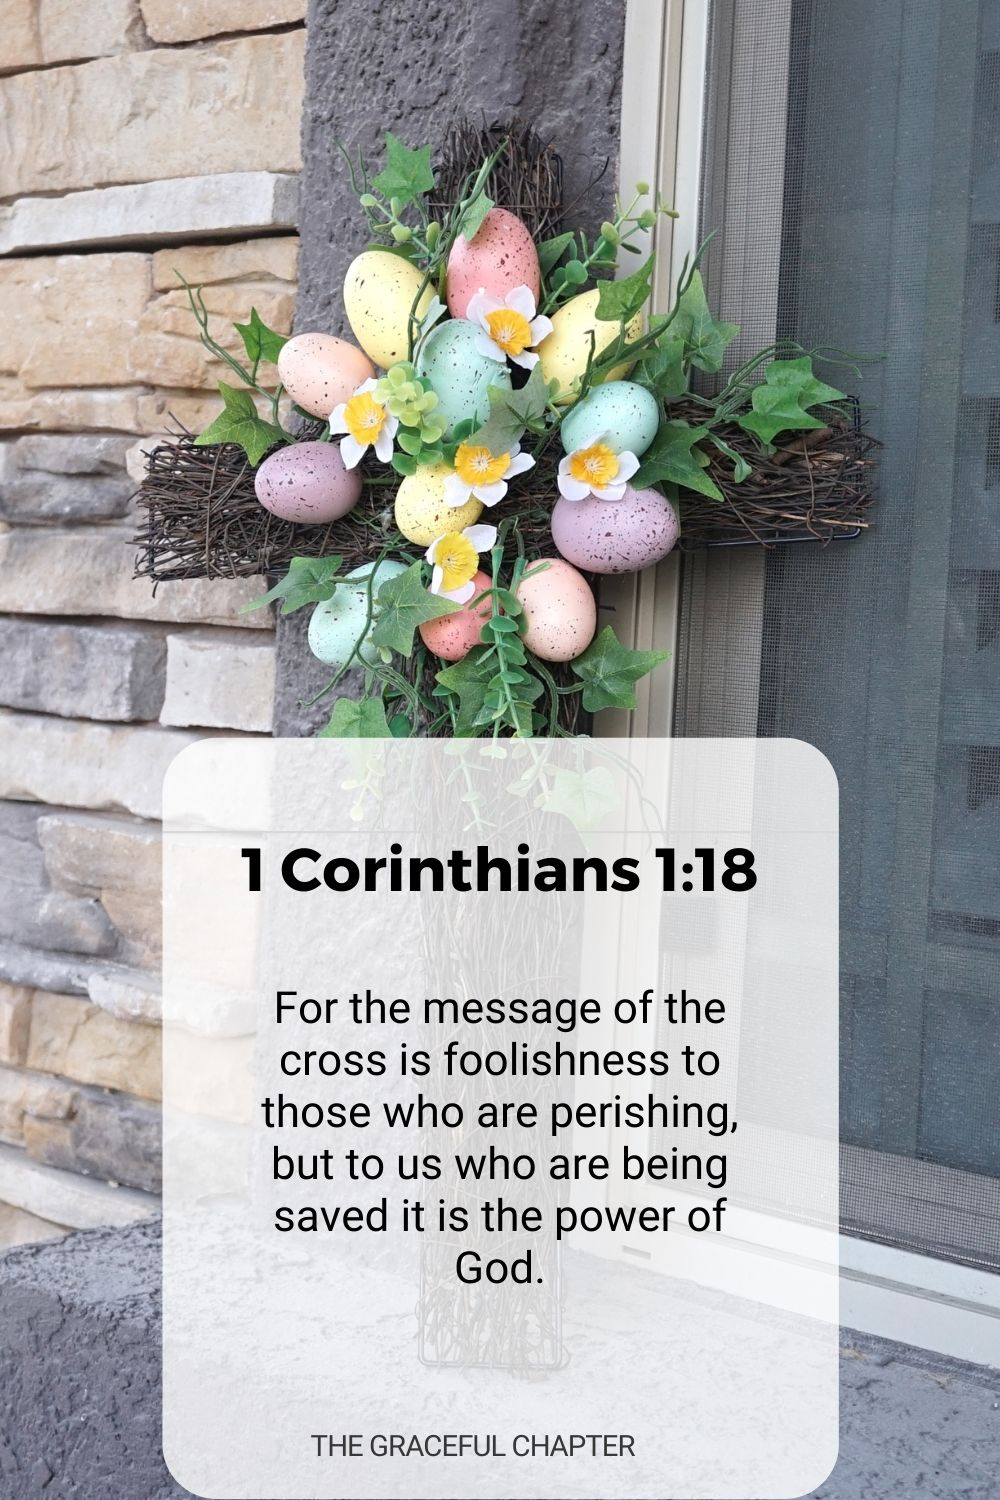 For the message of the cross is foolishness to those who are perishing, but to us who are being saved it is the power of God. 1 Corinthians 1:18